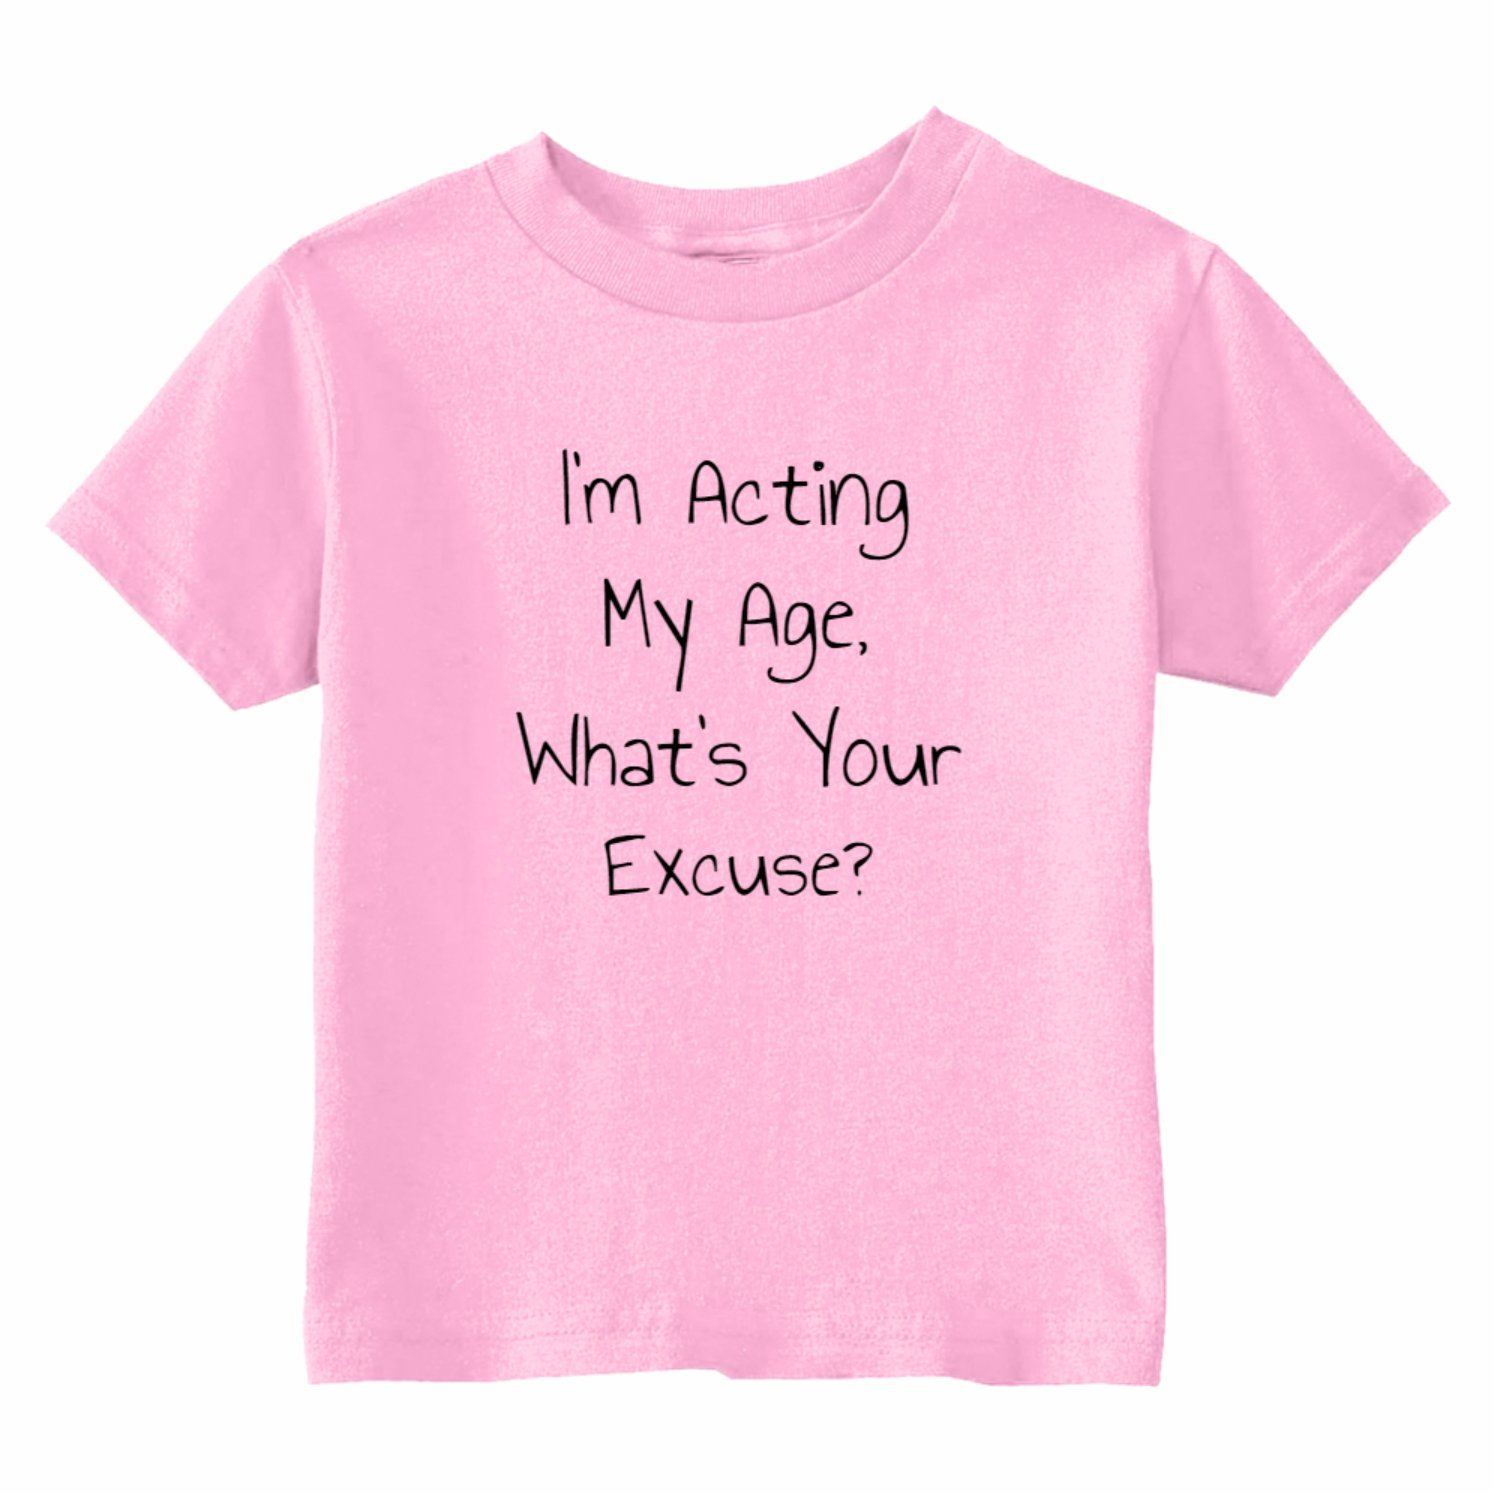 U.S Custom Kids Im Acting My Age Whats Your Excuse Toddler T-Shirt